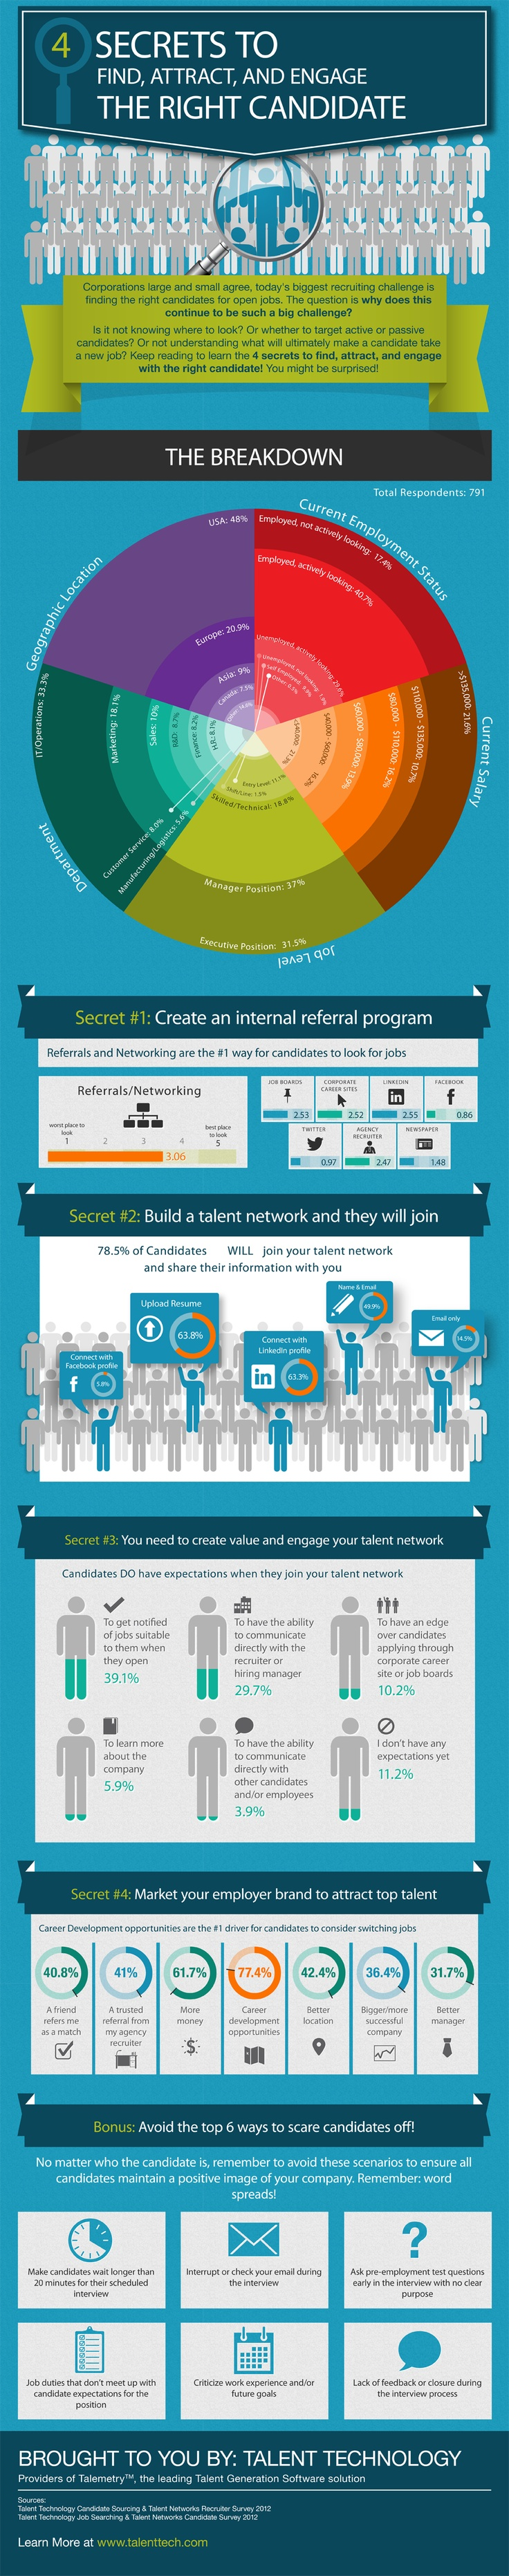 50 best candidate experience images on pinterest info graphics 4 secrets to find attract and engage the right candidates infographic talent technology malvernweather Choice Image